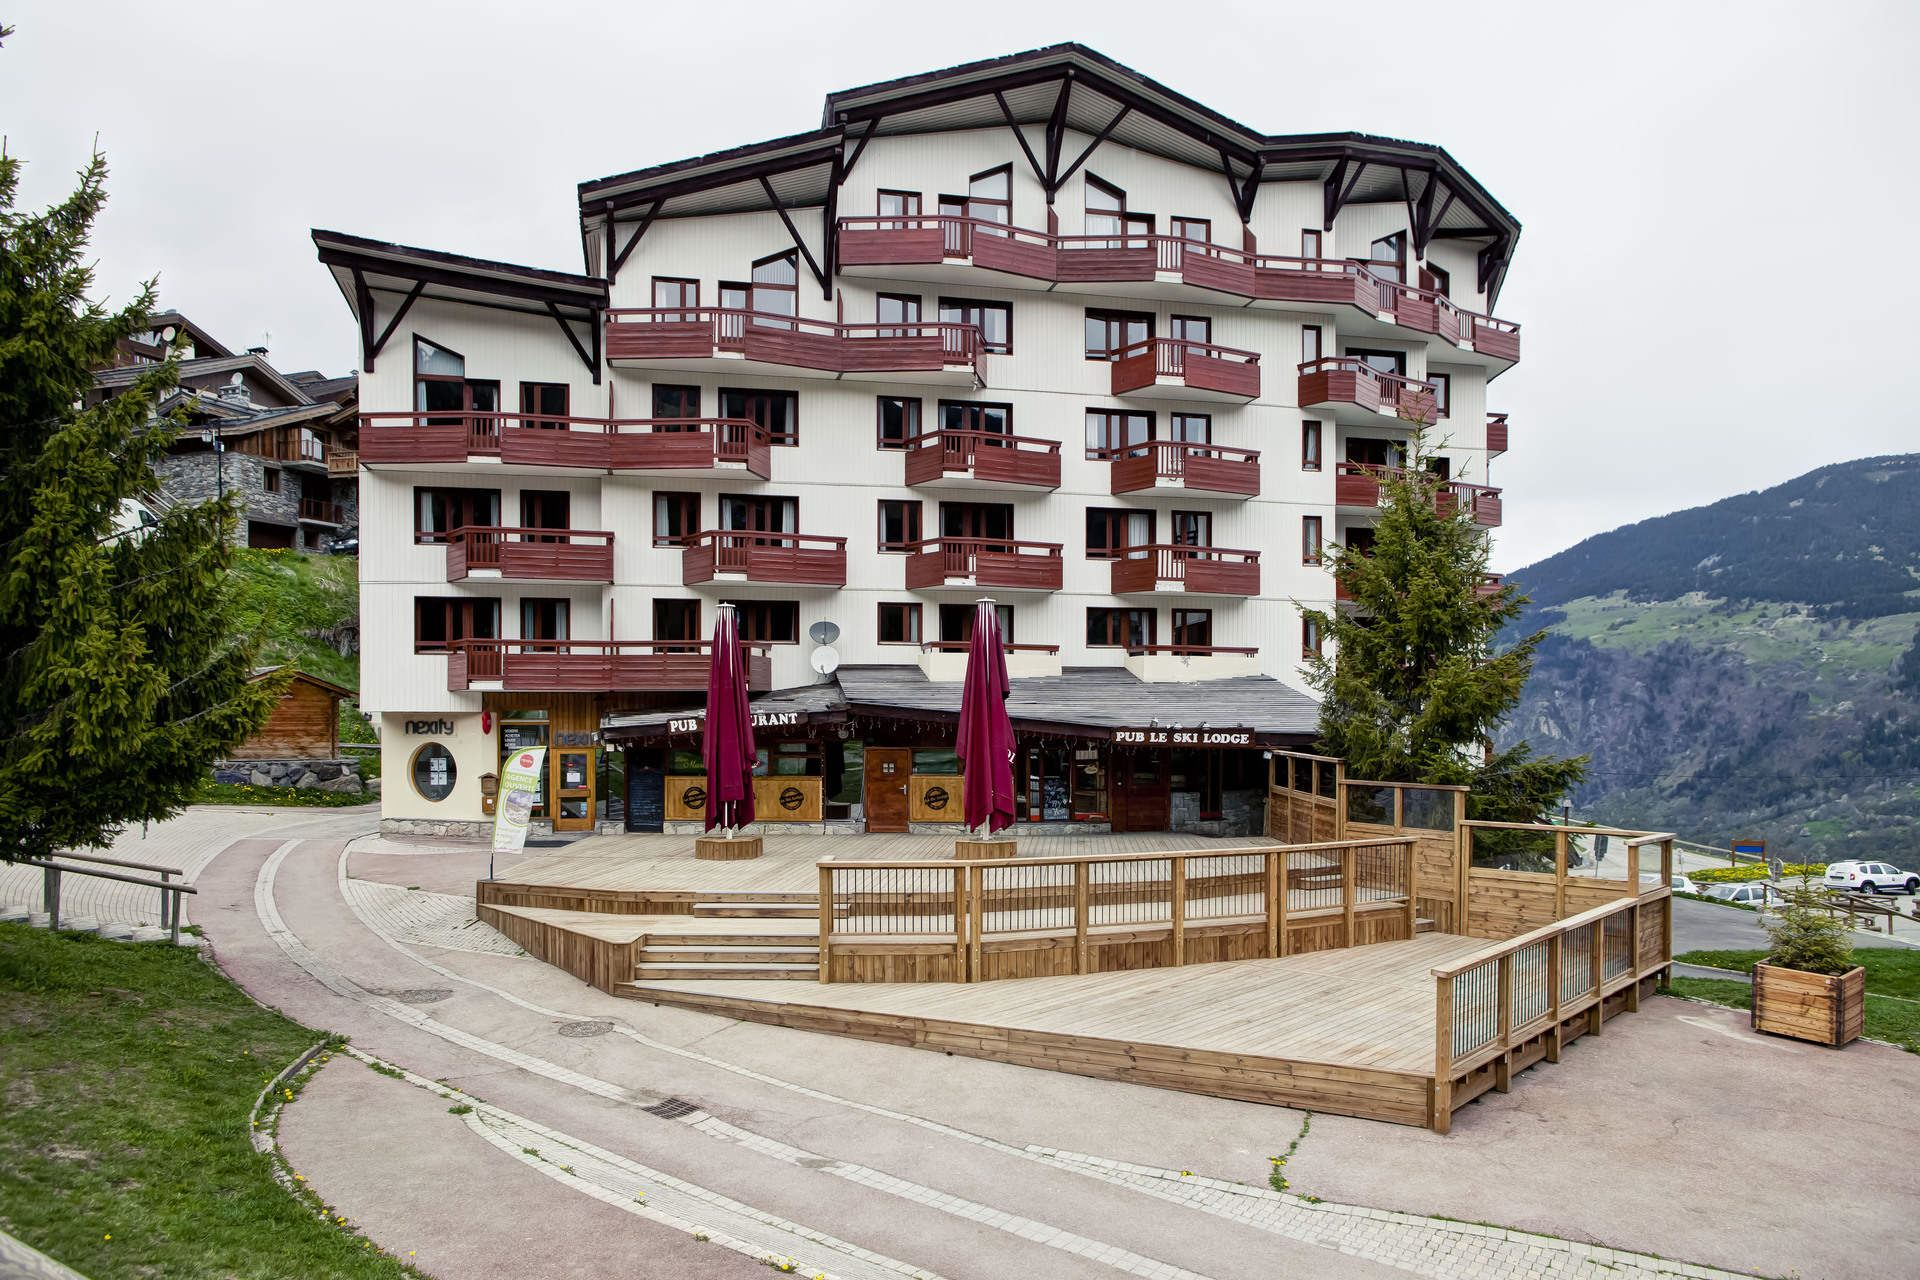 2 rooms, 4 people ski-in ski-out / Britania 602 (Mountain)